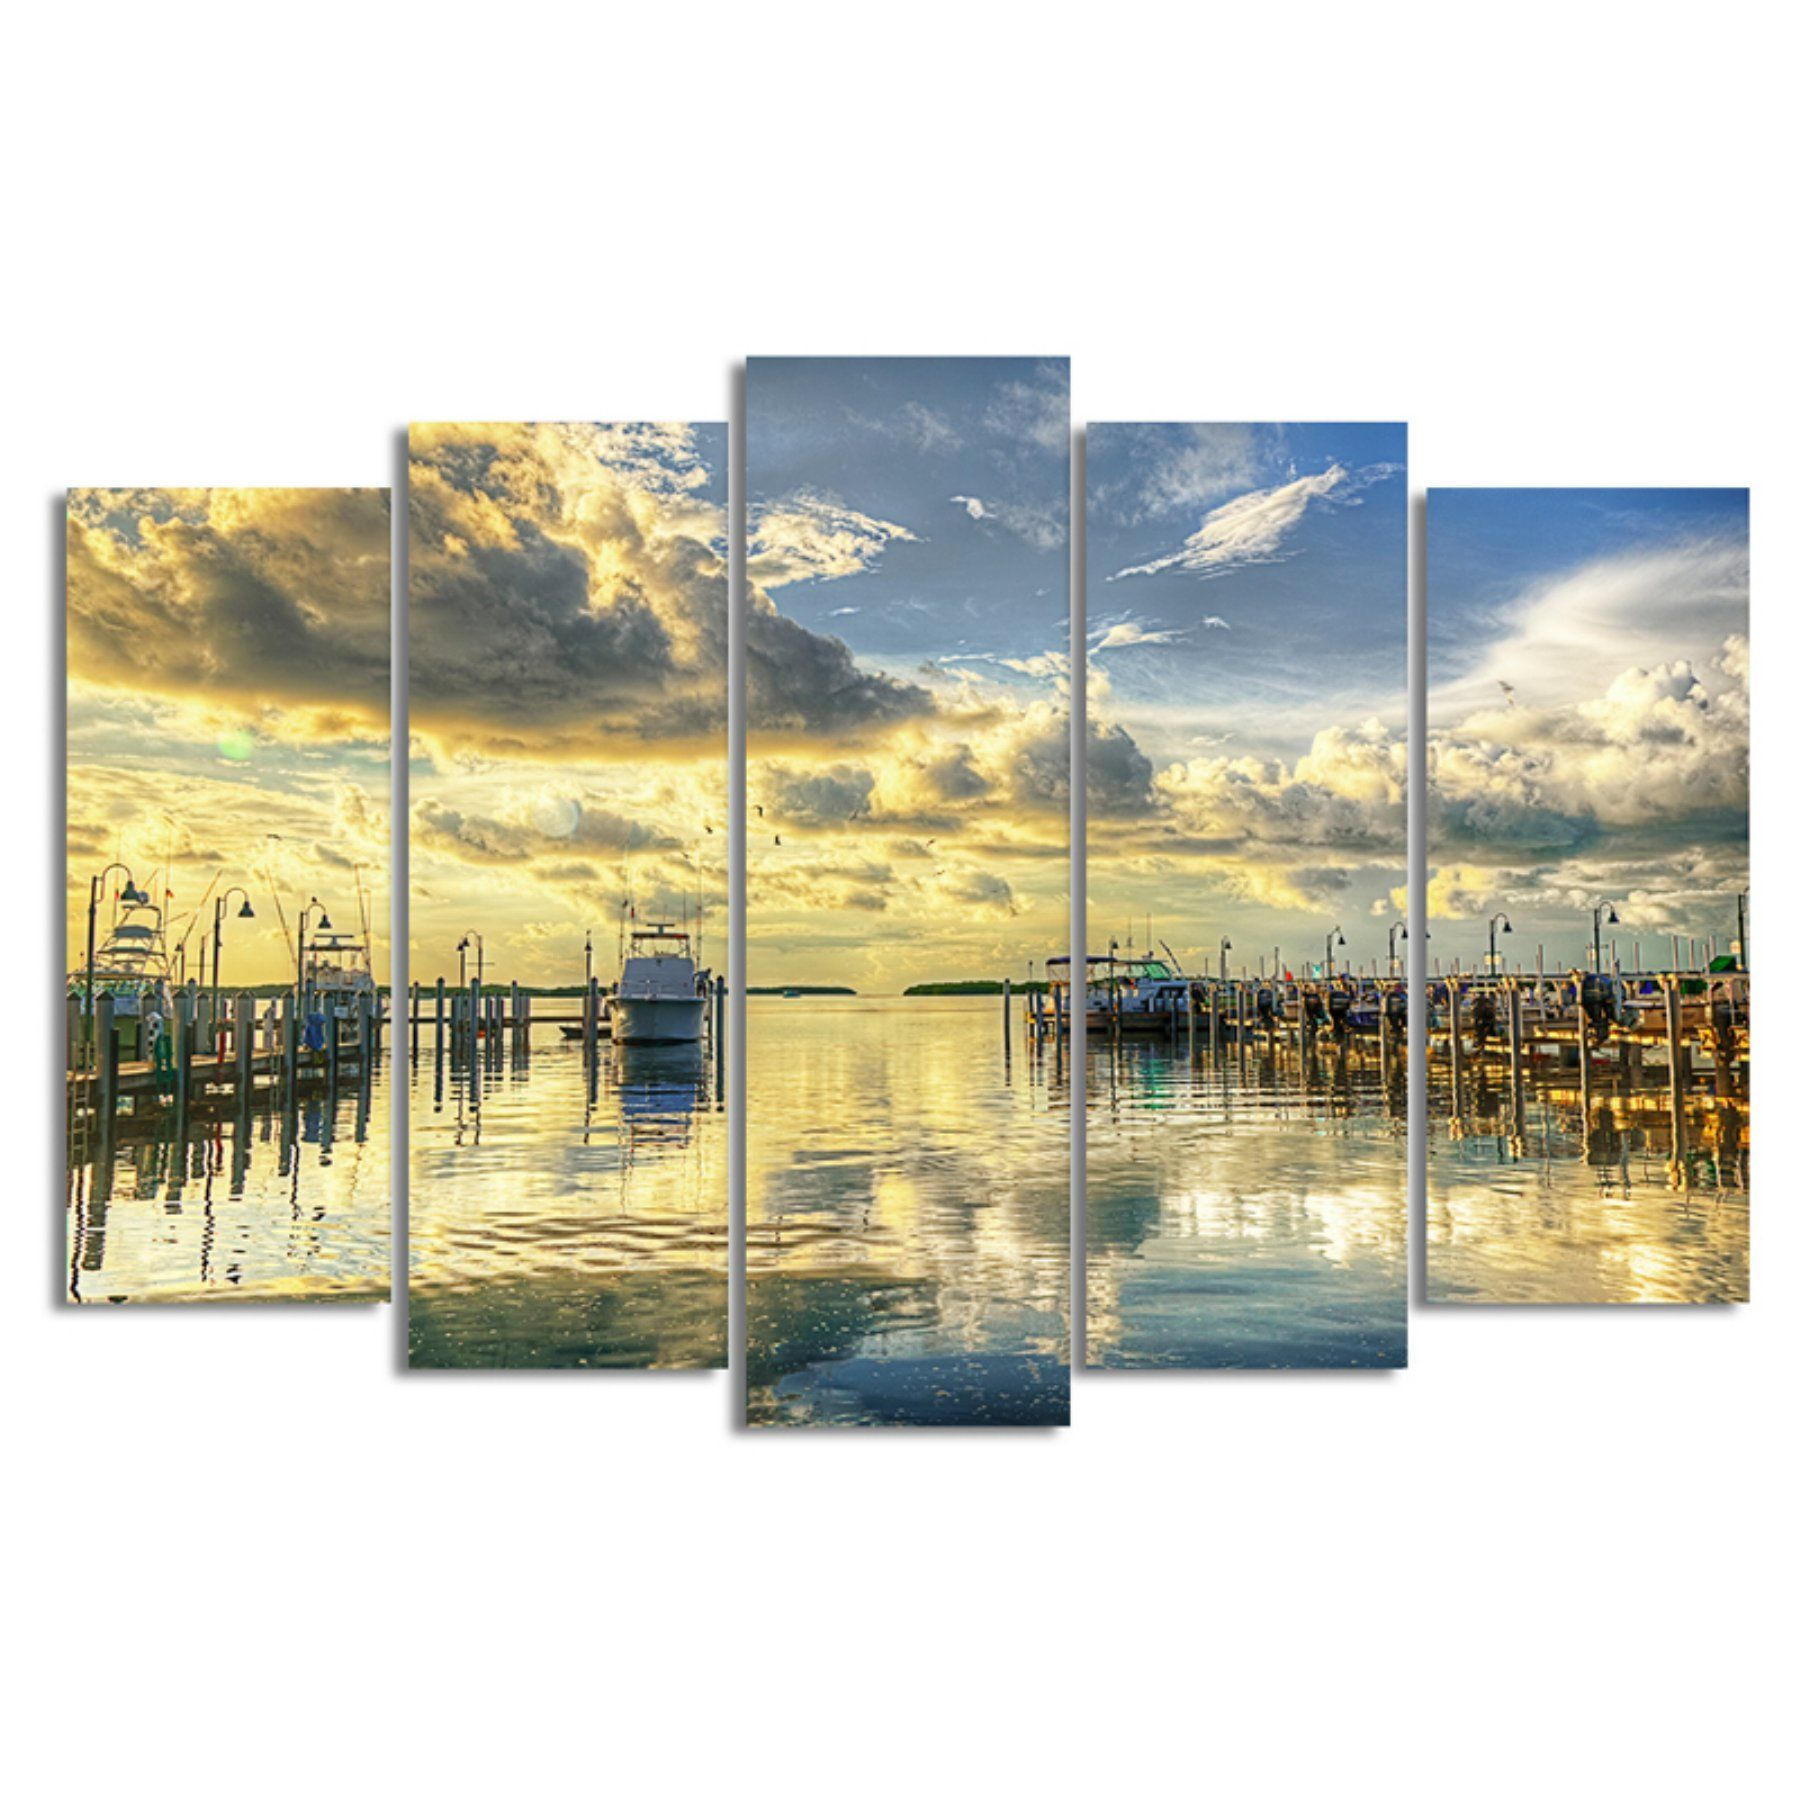 Ready2HangArt Boat Dock Canvas Wall Art - 5 pc. Set - BB153-GWC5PC ...